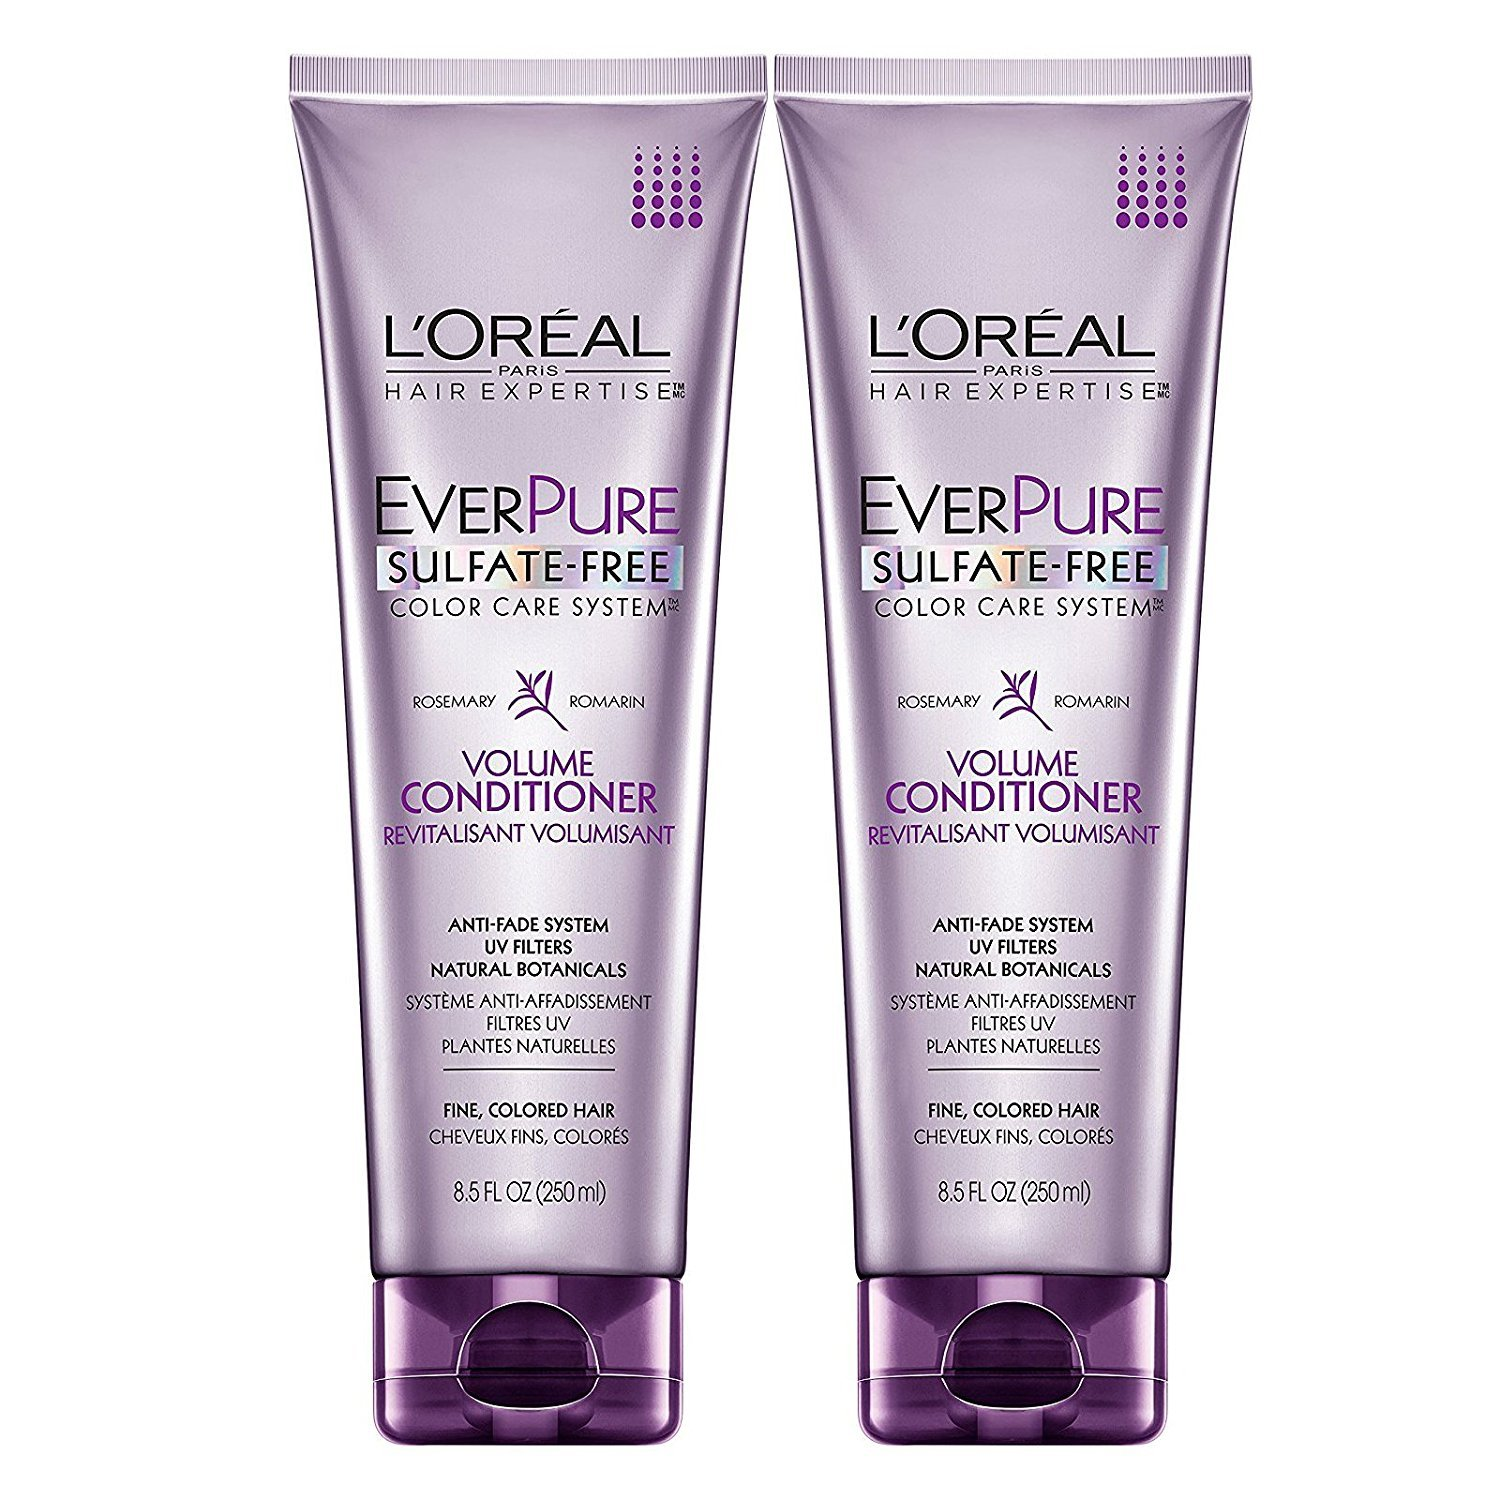 L'Oreal Paris EverPure Sulfate-Free Color Care System, Rosemary, Volume Conditioner, 8.5 oz, Pack of 2